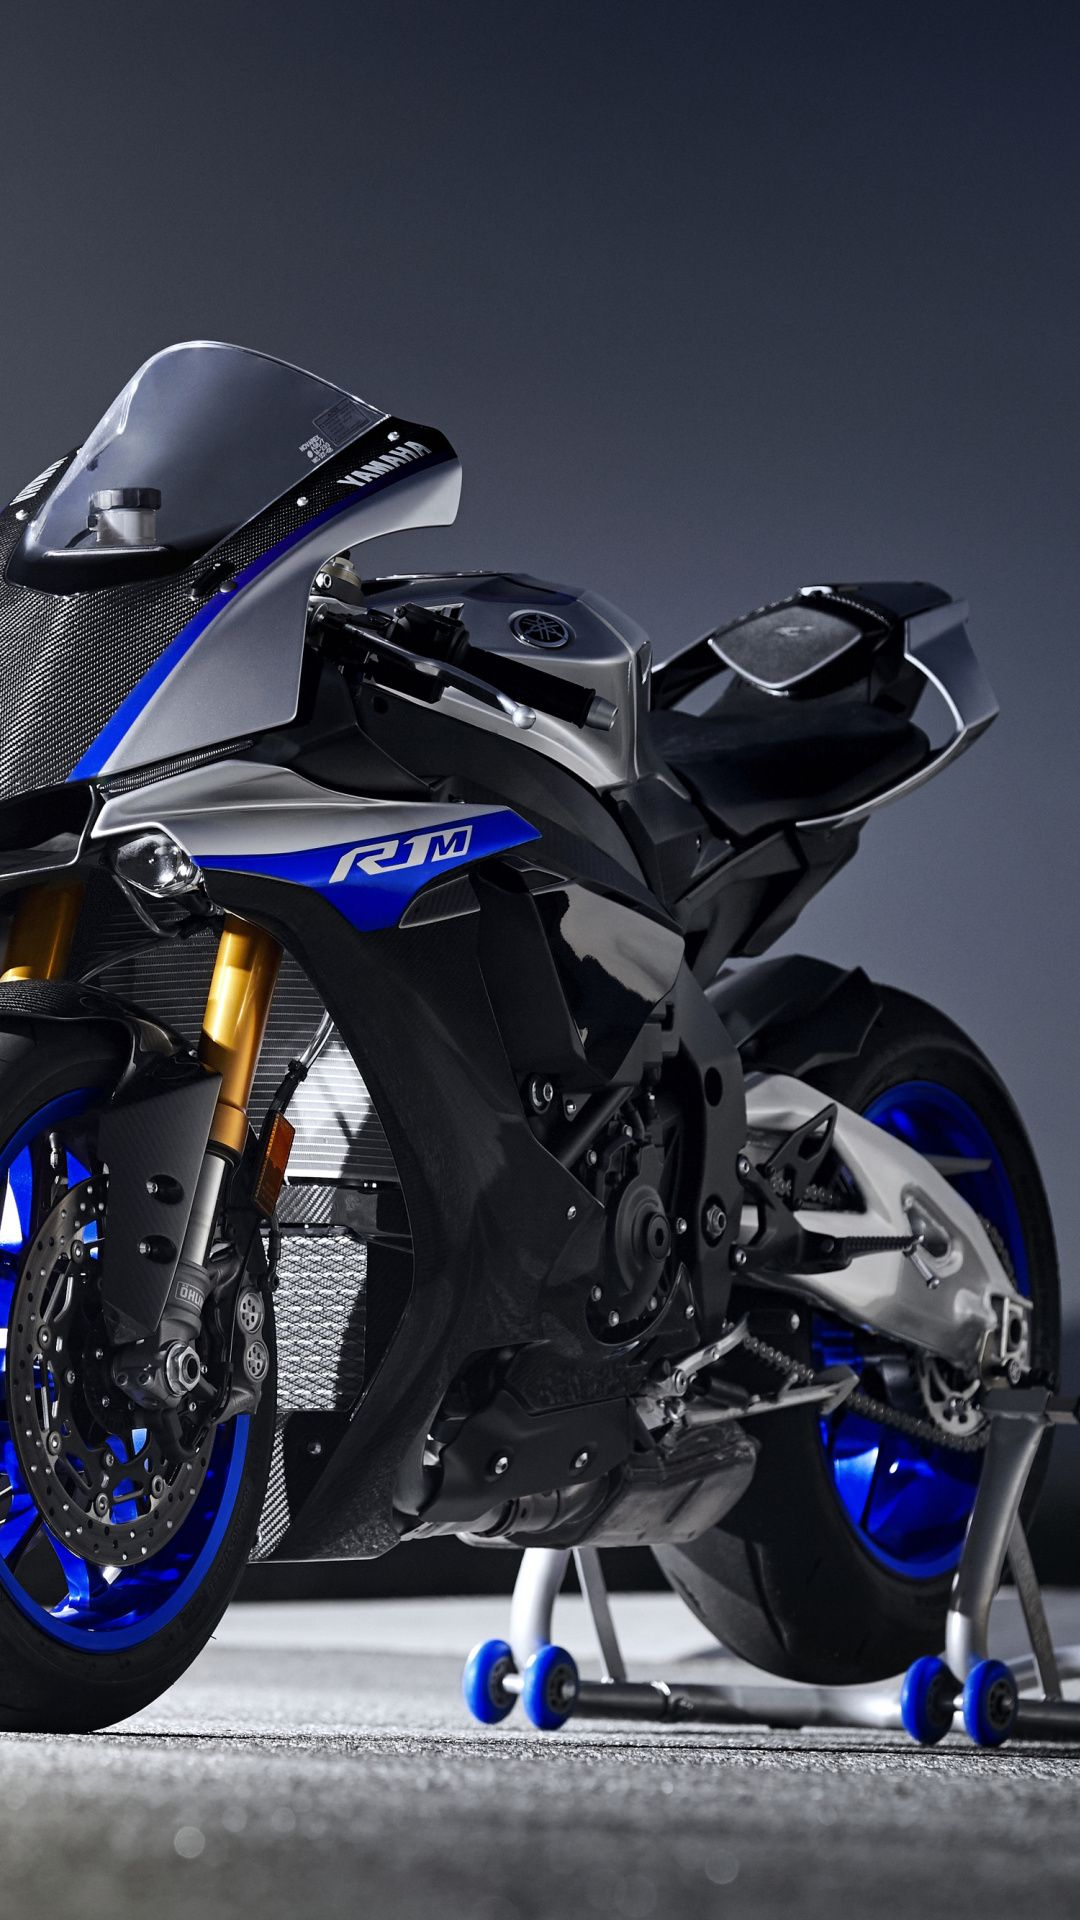 Yamaha Yzf R1 Sports Bike 2018 Wallpaper Mobil Sport Mobil